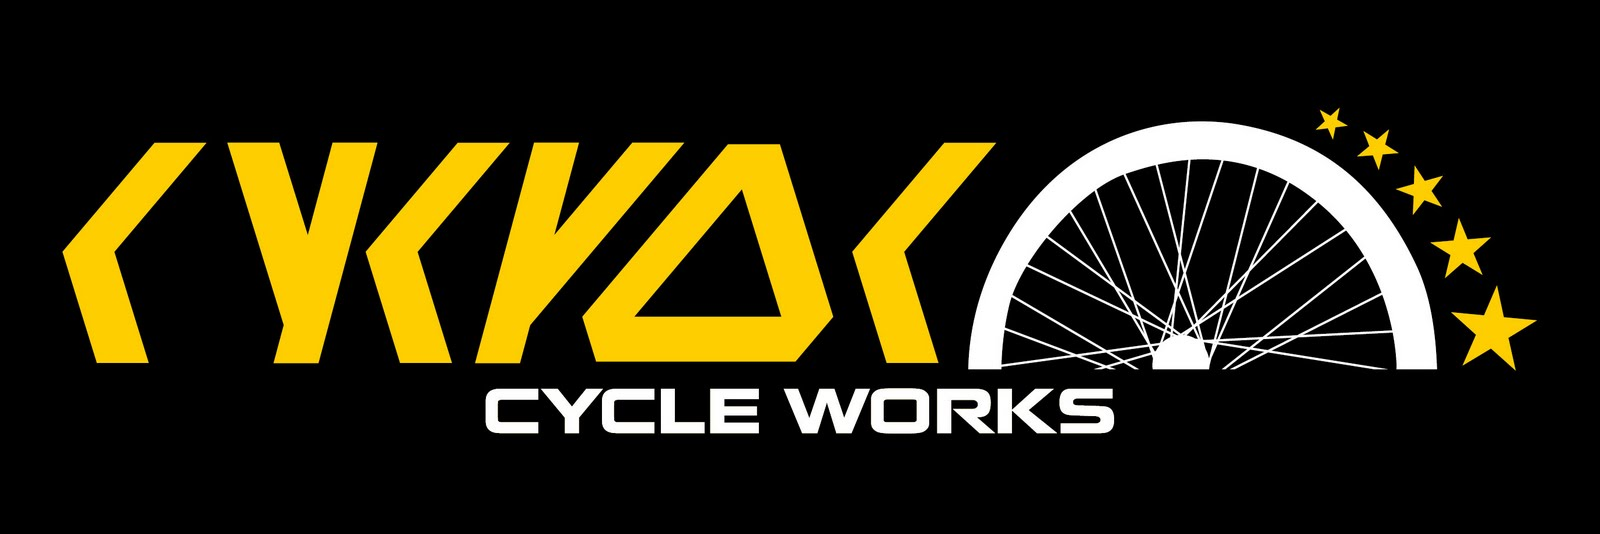 cycroc_cycle_works_logo_002.jpg